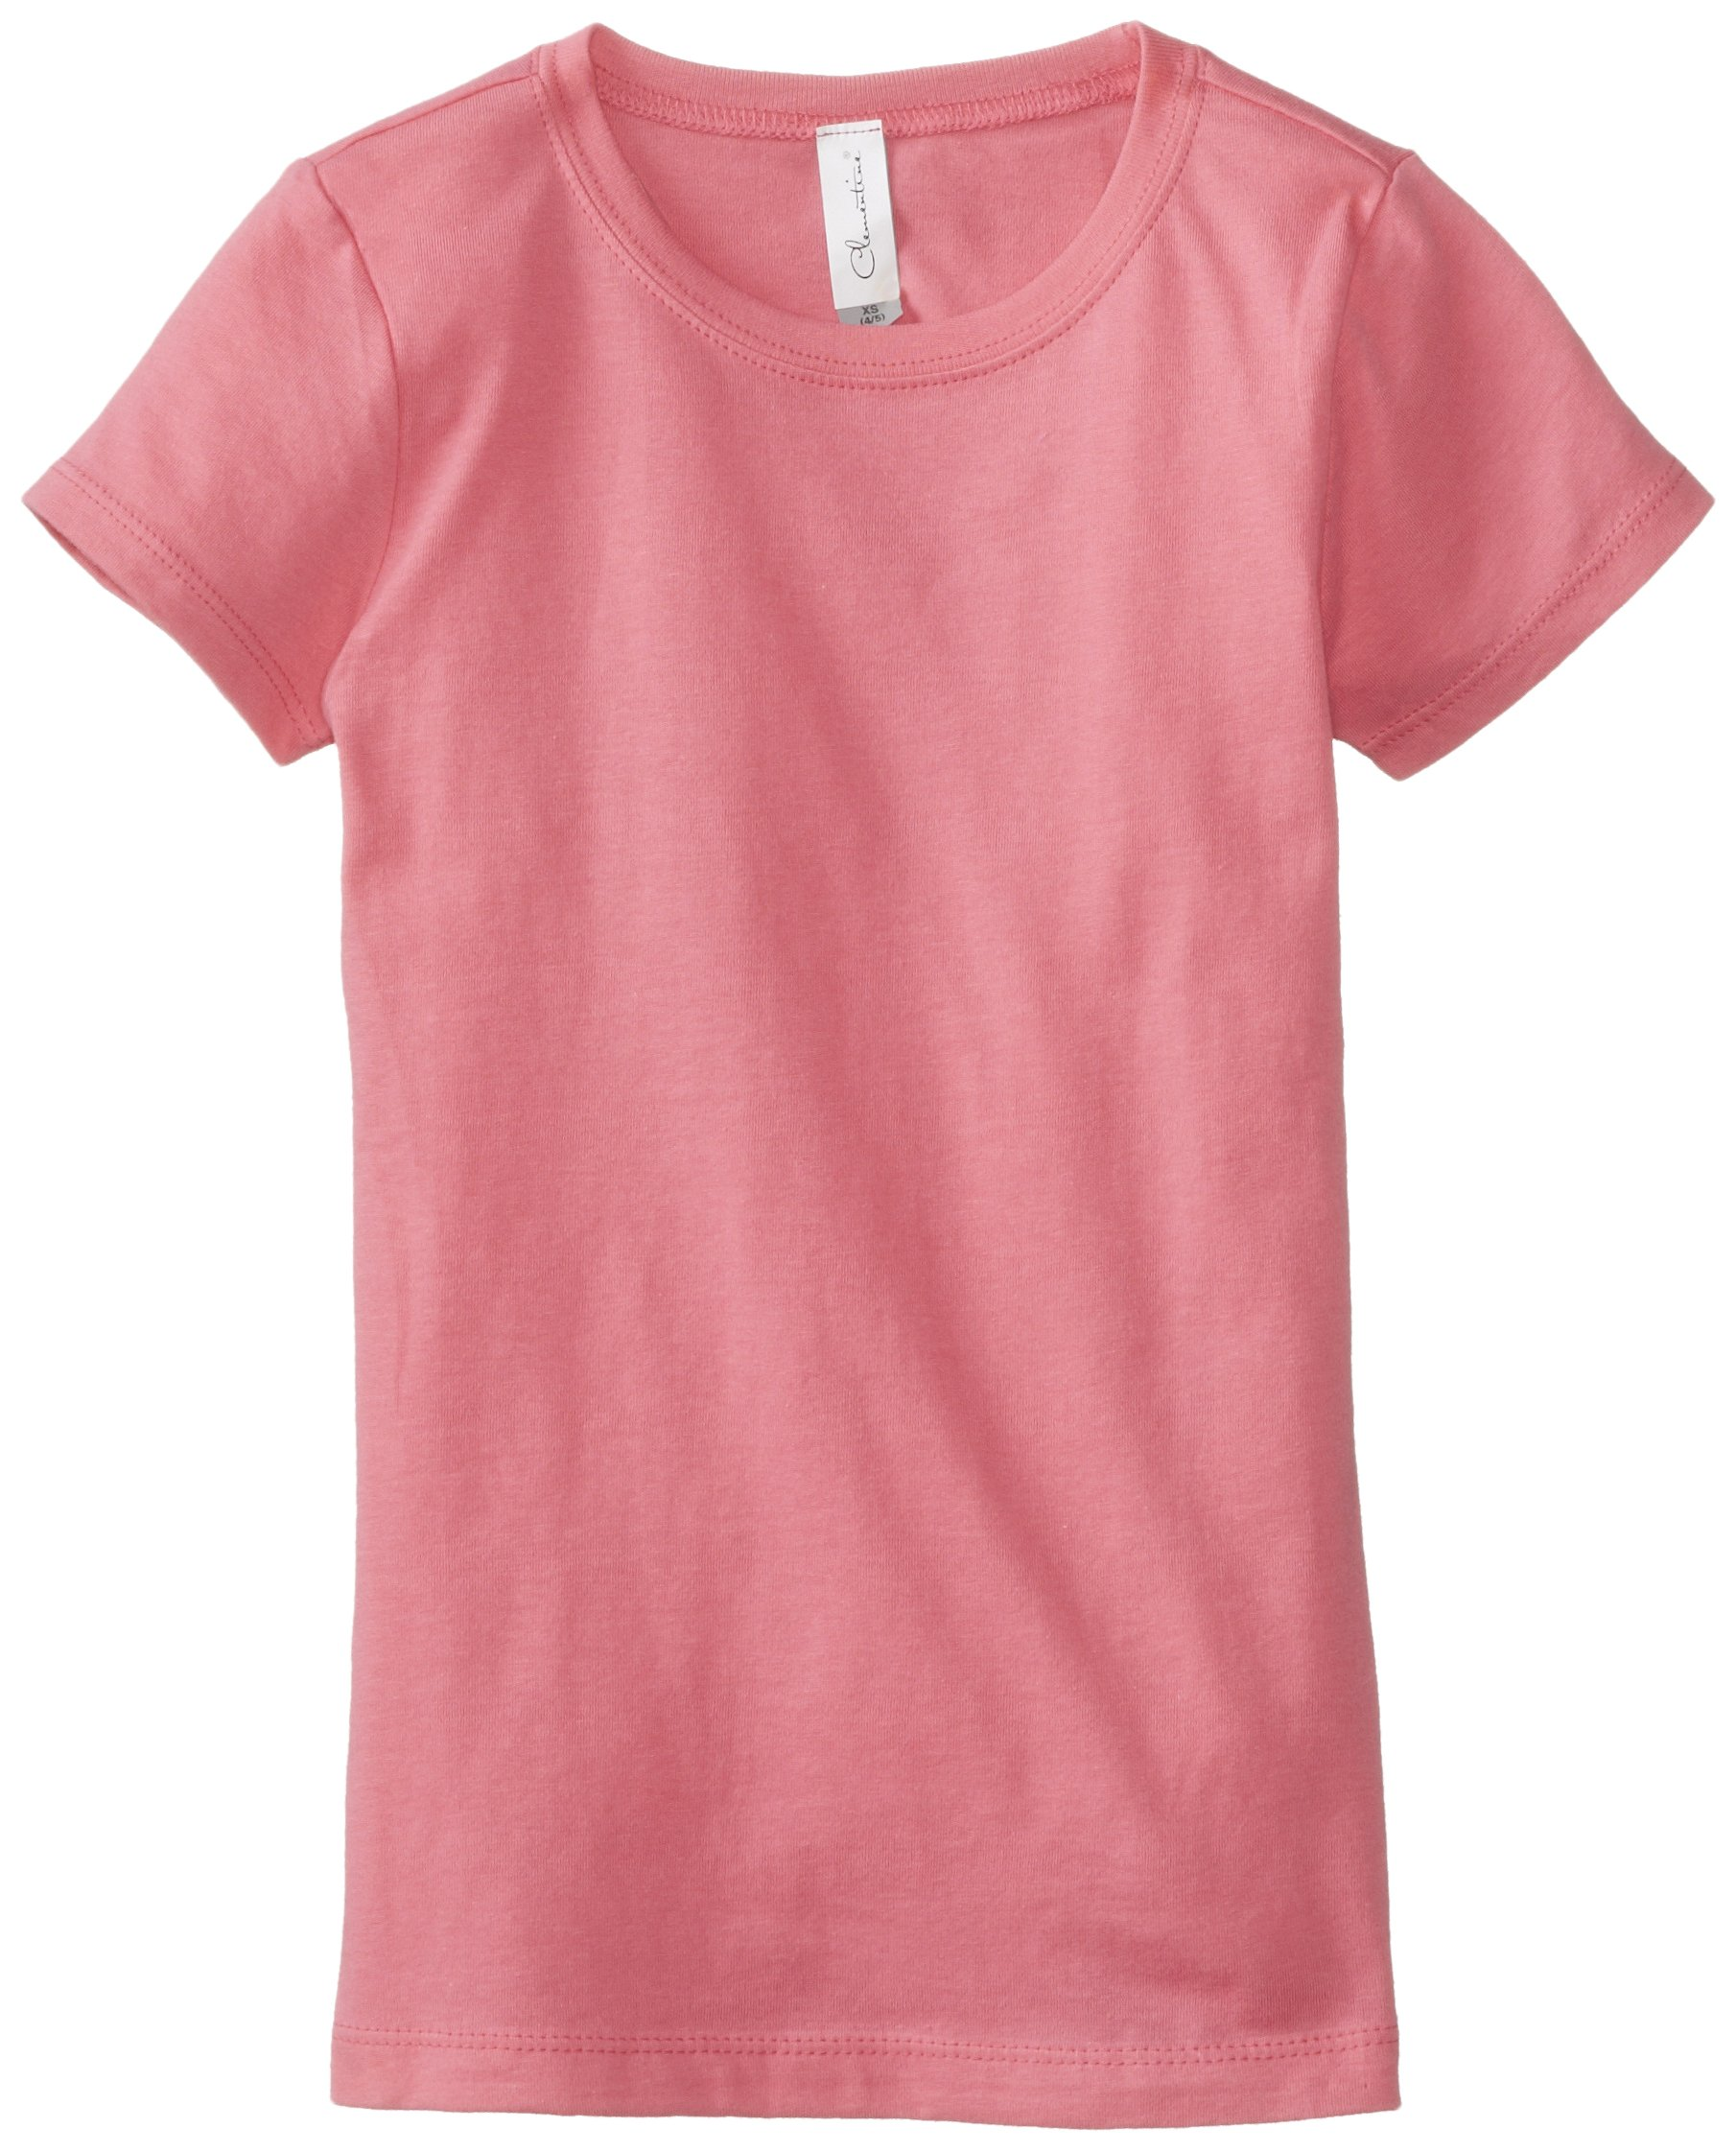 Clementine Big Girls' Everyday T-Shirt, Hot Pink, Large(10-12)